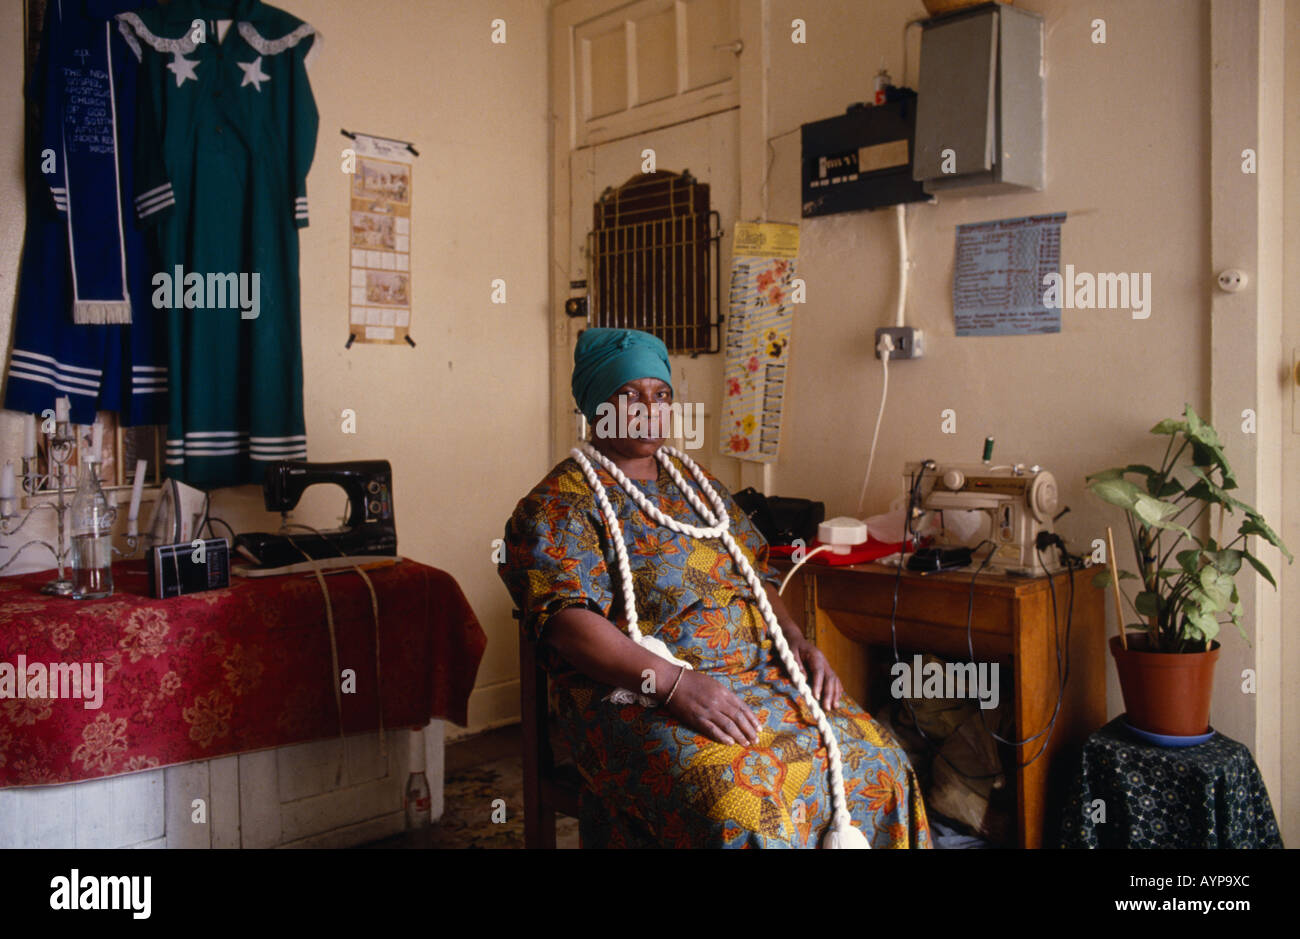 SOUTH AFRICA Guateng Johannesburg Portrait of female Zionist uniform maker in home workshop sitting beside sewing machine - Stock Image